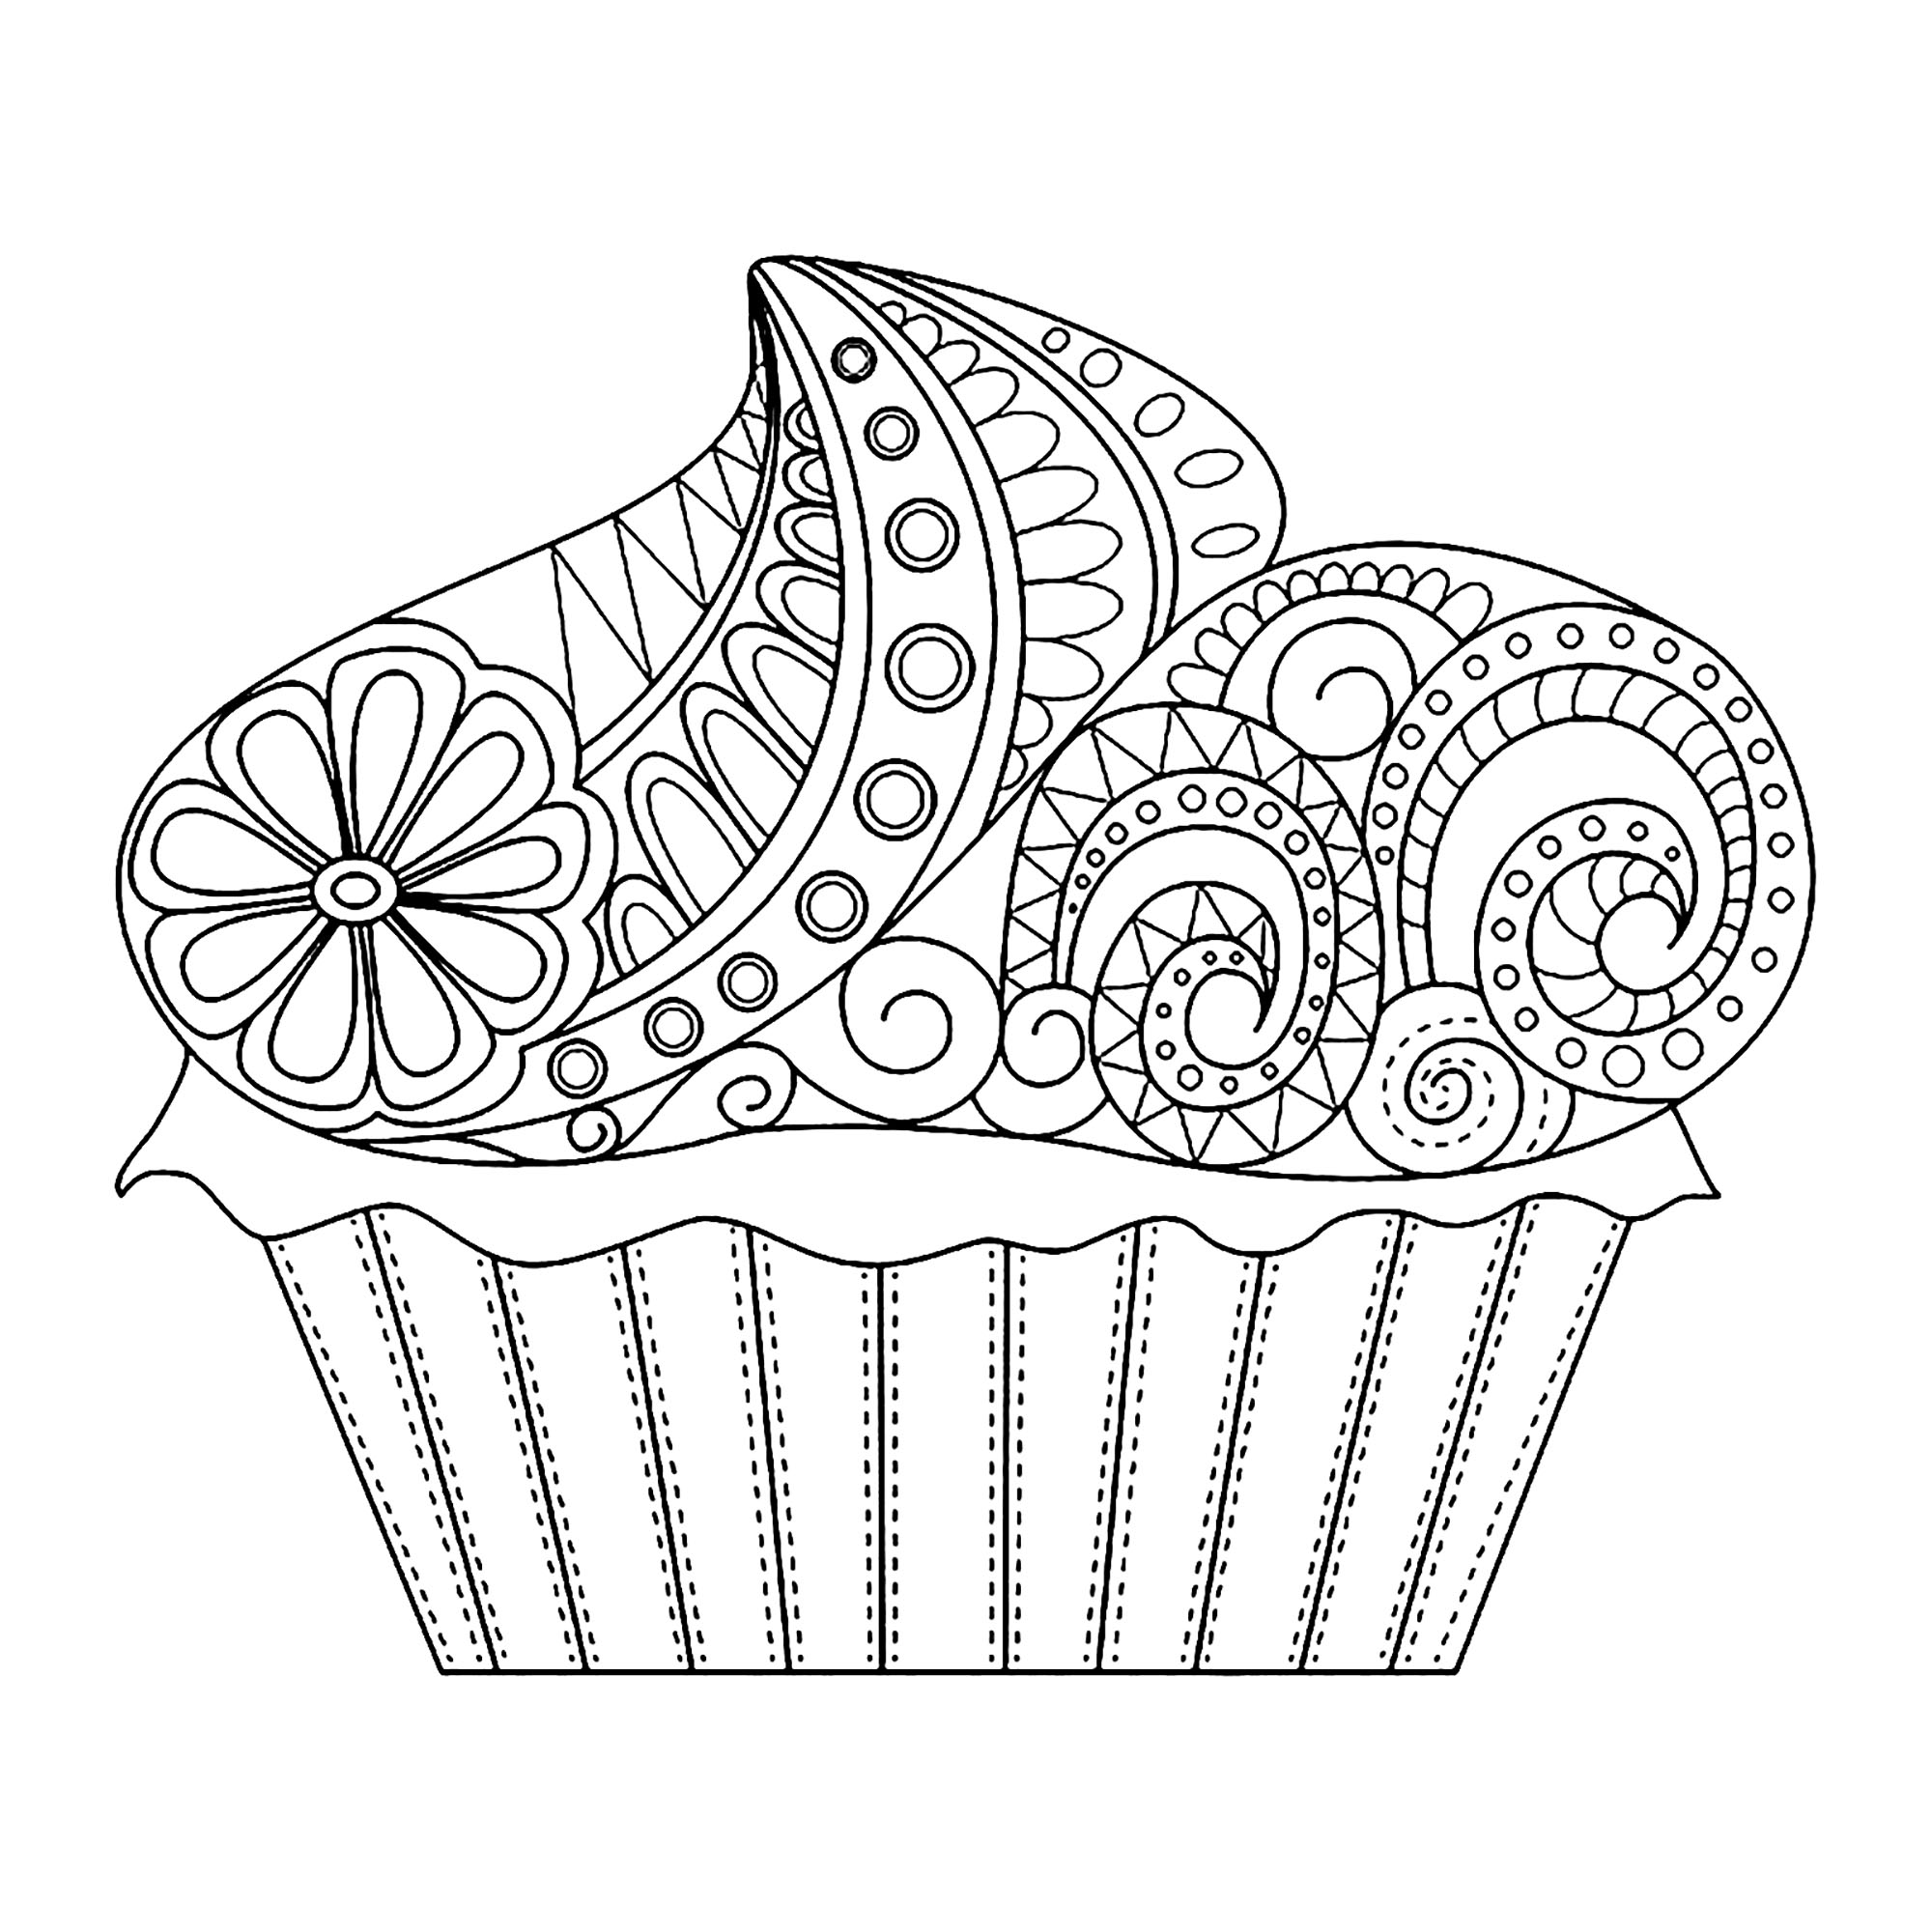 cup cake coloring pictures cupcake printable coloring pages coloring home pictures cup cake coloring